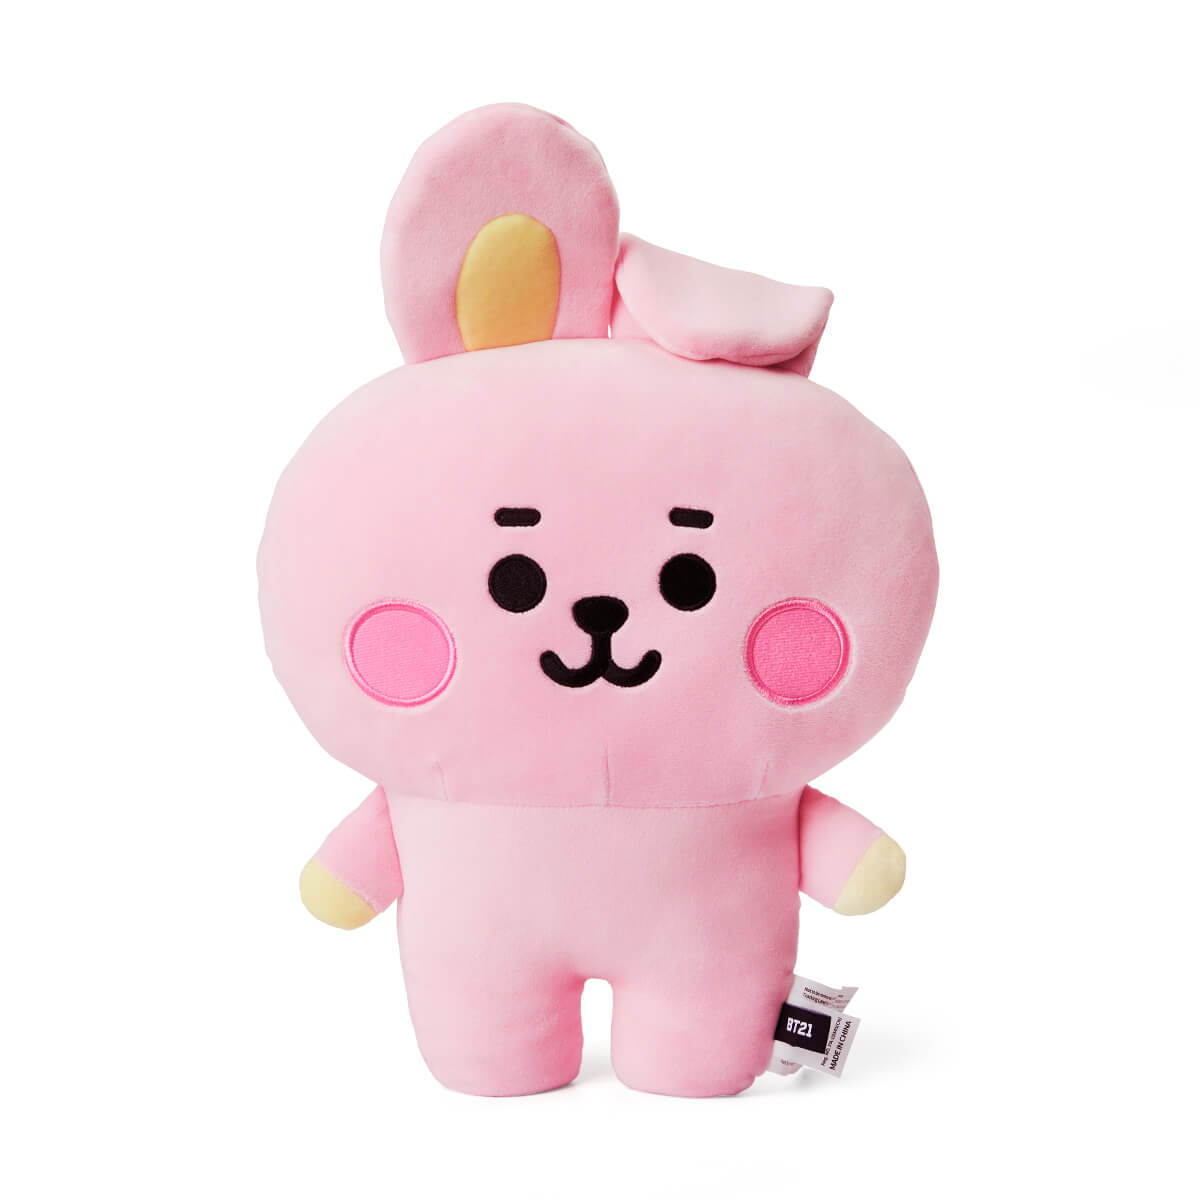 BT21 COOKY BABY Hug Me Cushion